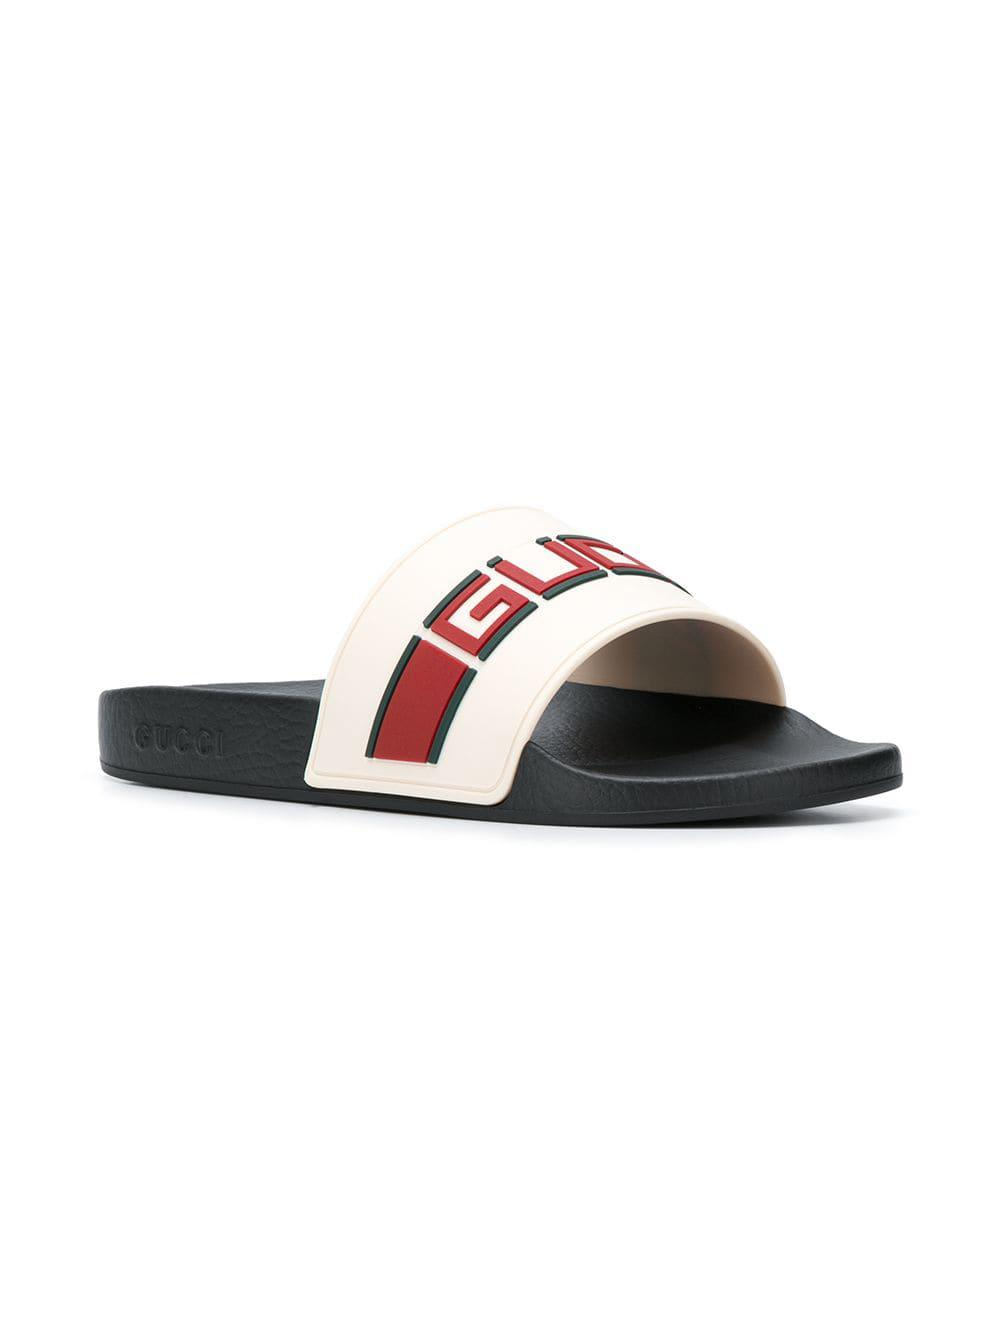 5c53ee19f2fd Lyst - Gucci Logo Print Slides in White for Men - Save 12%